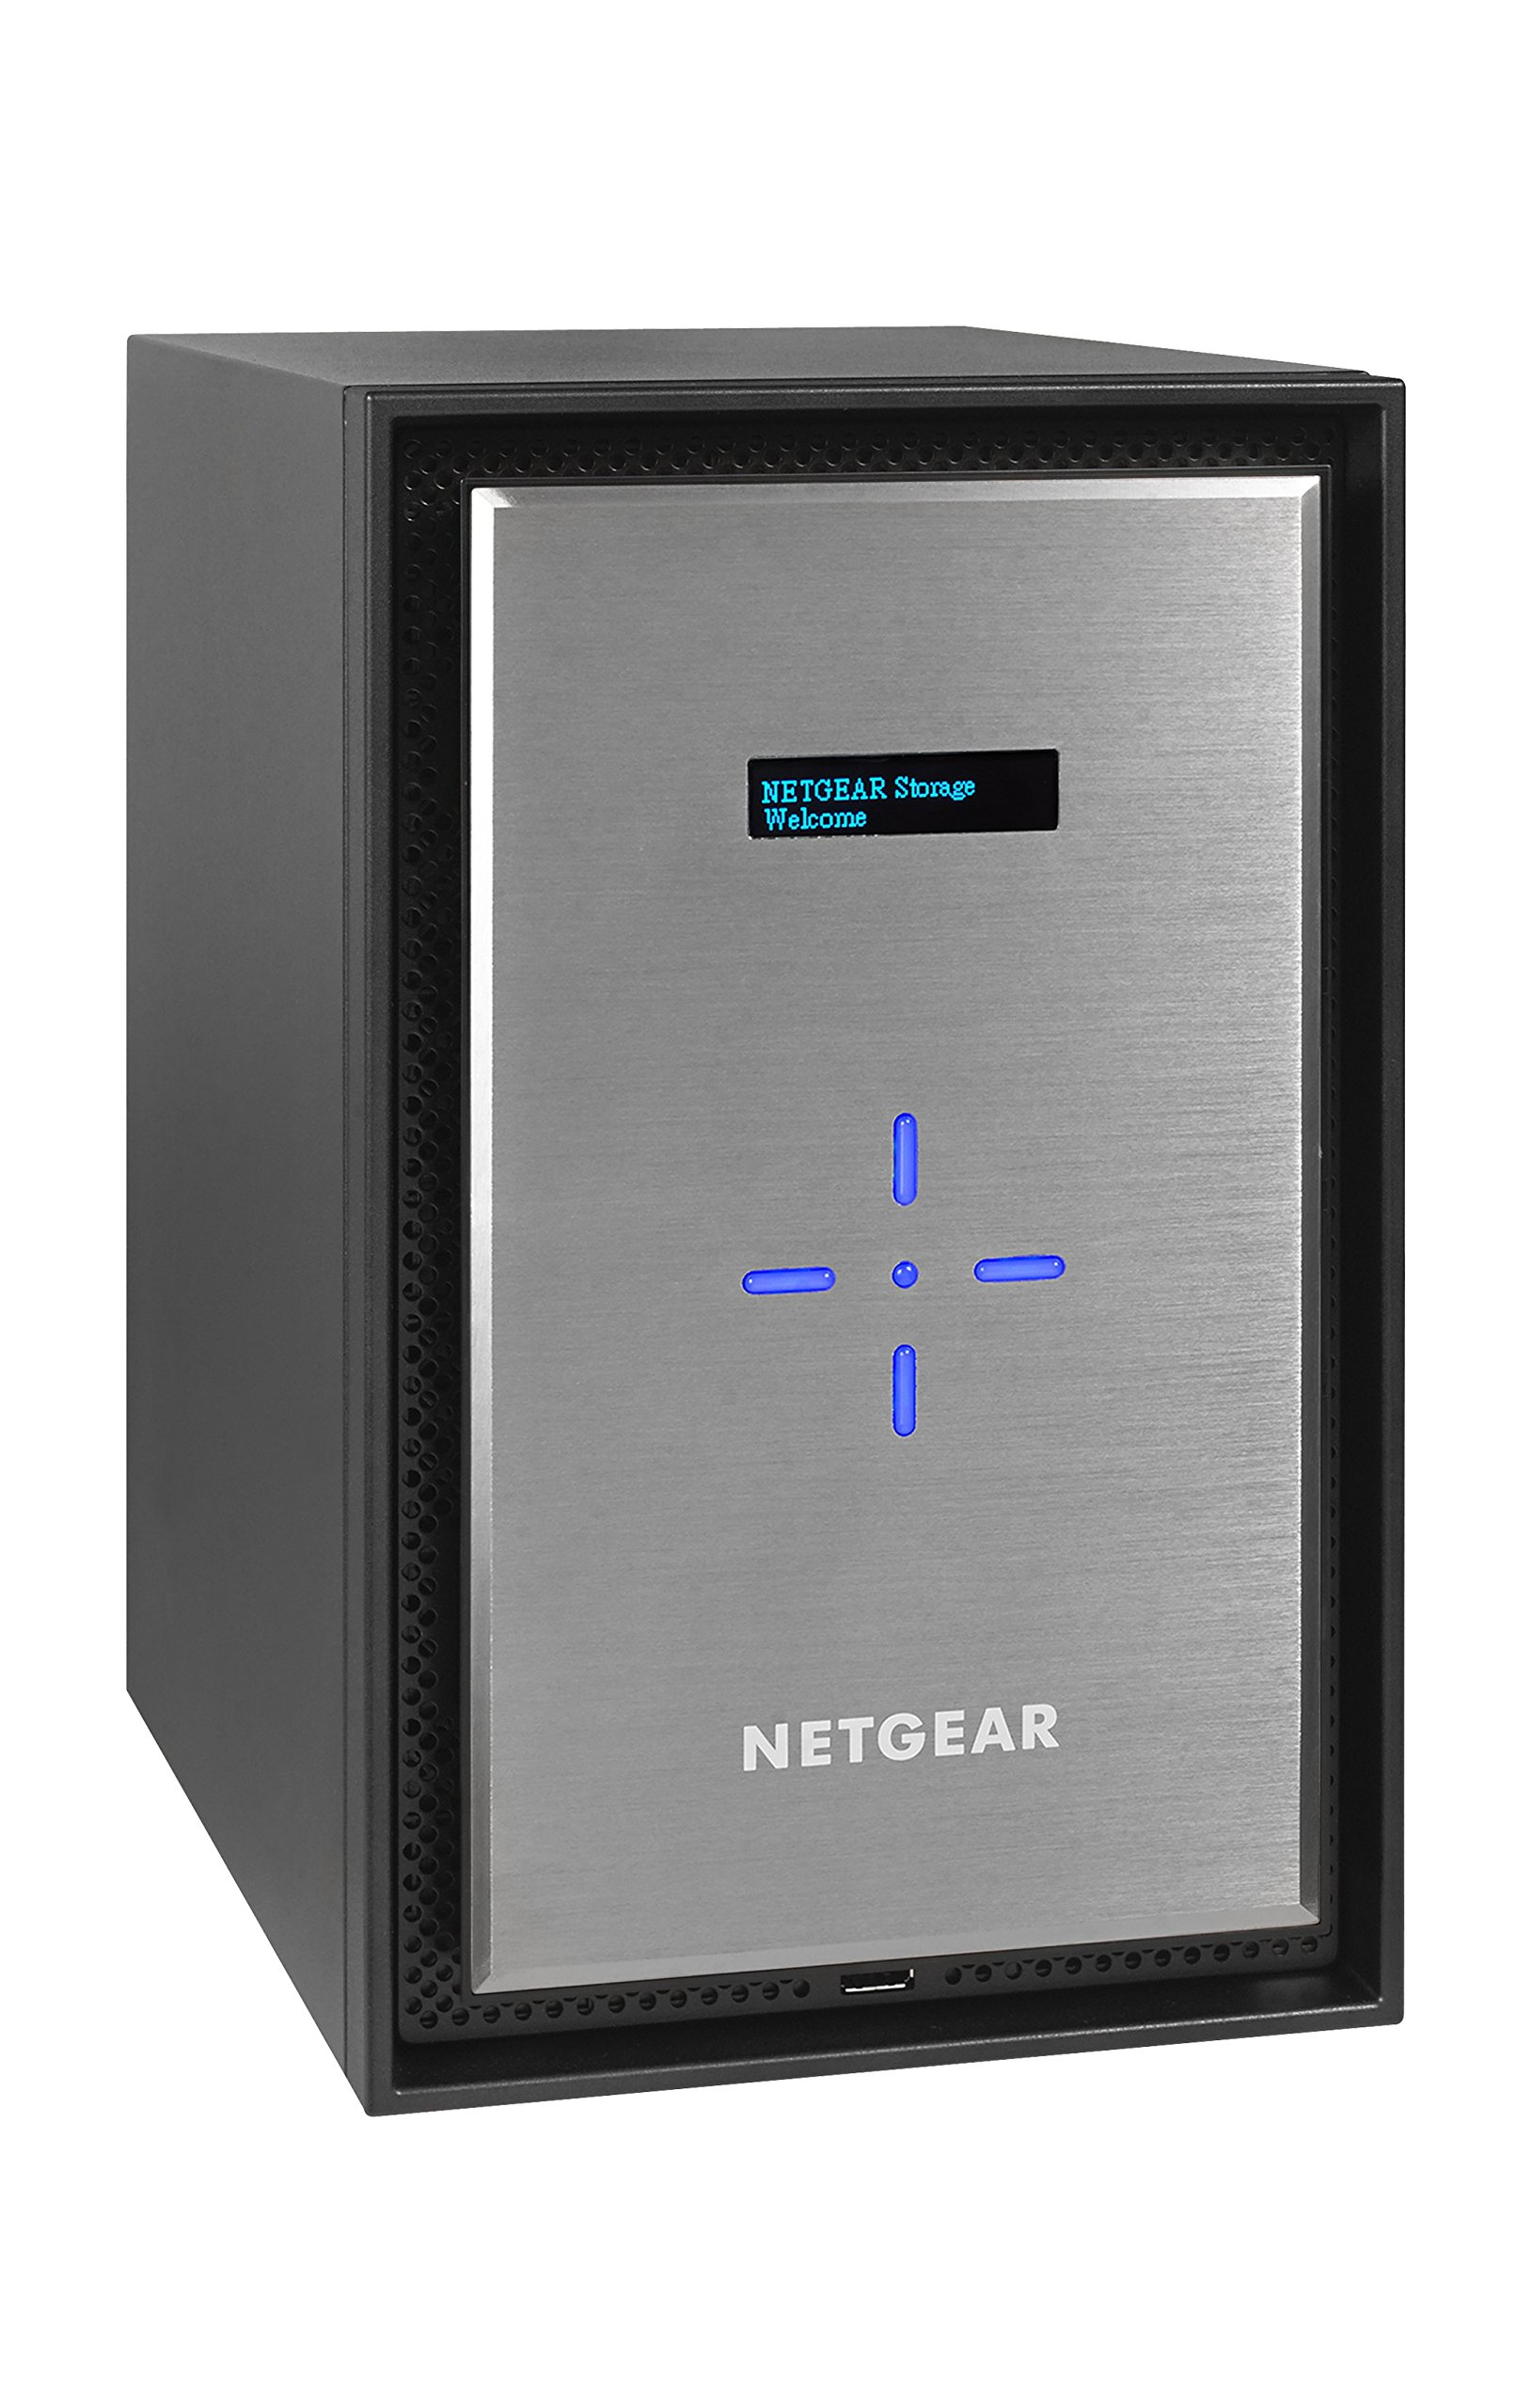 NETGEAR ReadyNAS RN628E3 8 Bay 24TB Enterprise Ultimate Performance NAS, 80TB Capacity Network Attached Storage, Intel Xeon 2.2GHz Quad Core Processor, 8GB RAM, RN628XE3-100NES